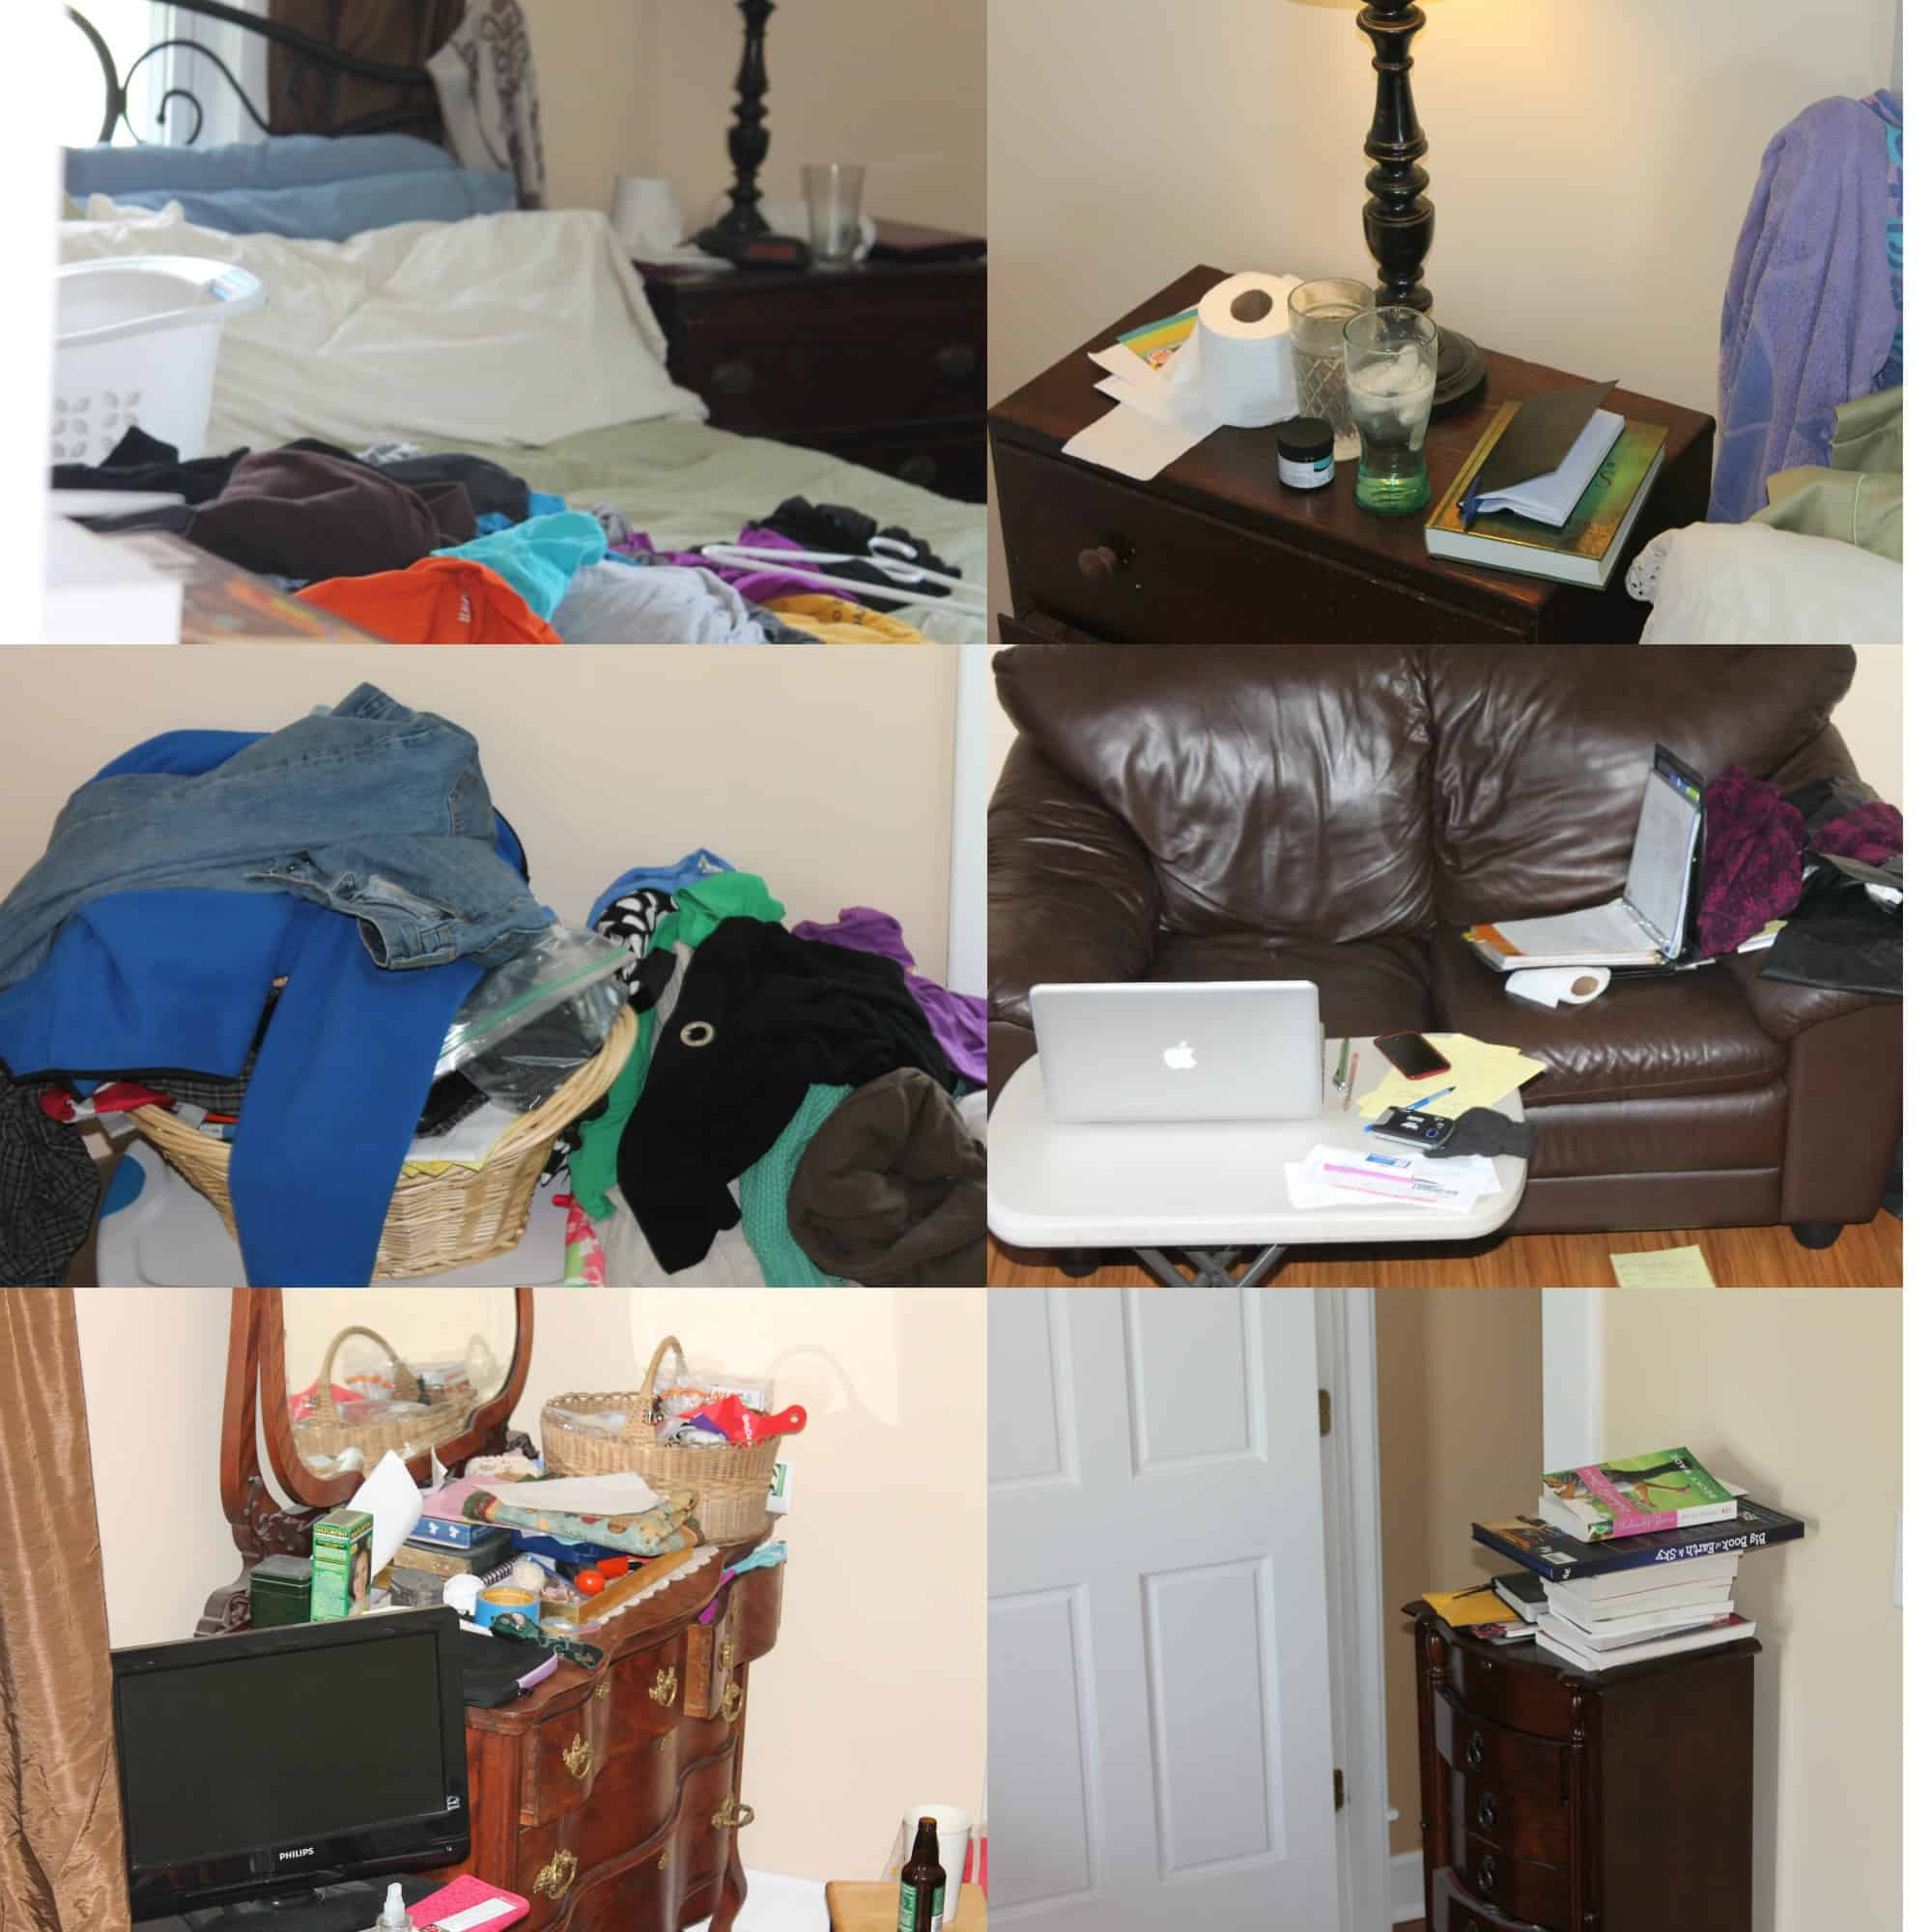 Messy Bedroom: Project Simplify: The Very Long Overdue Project